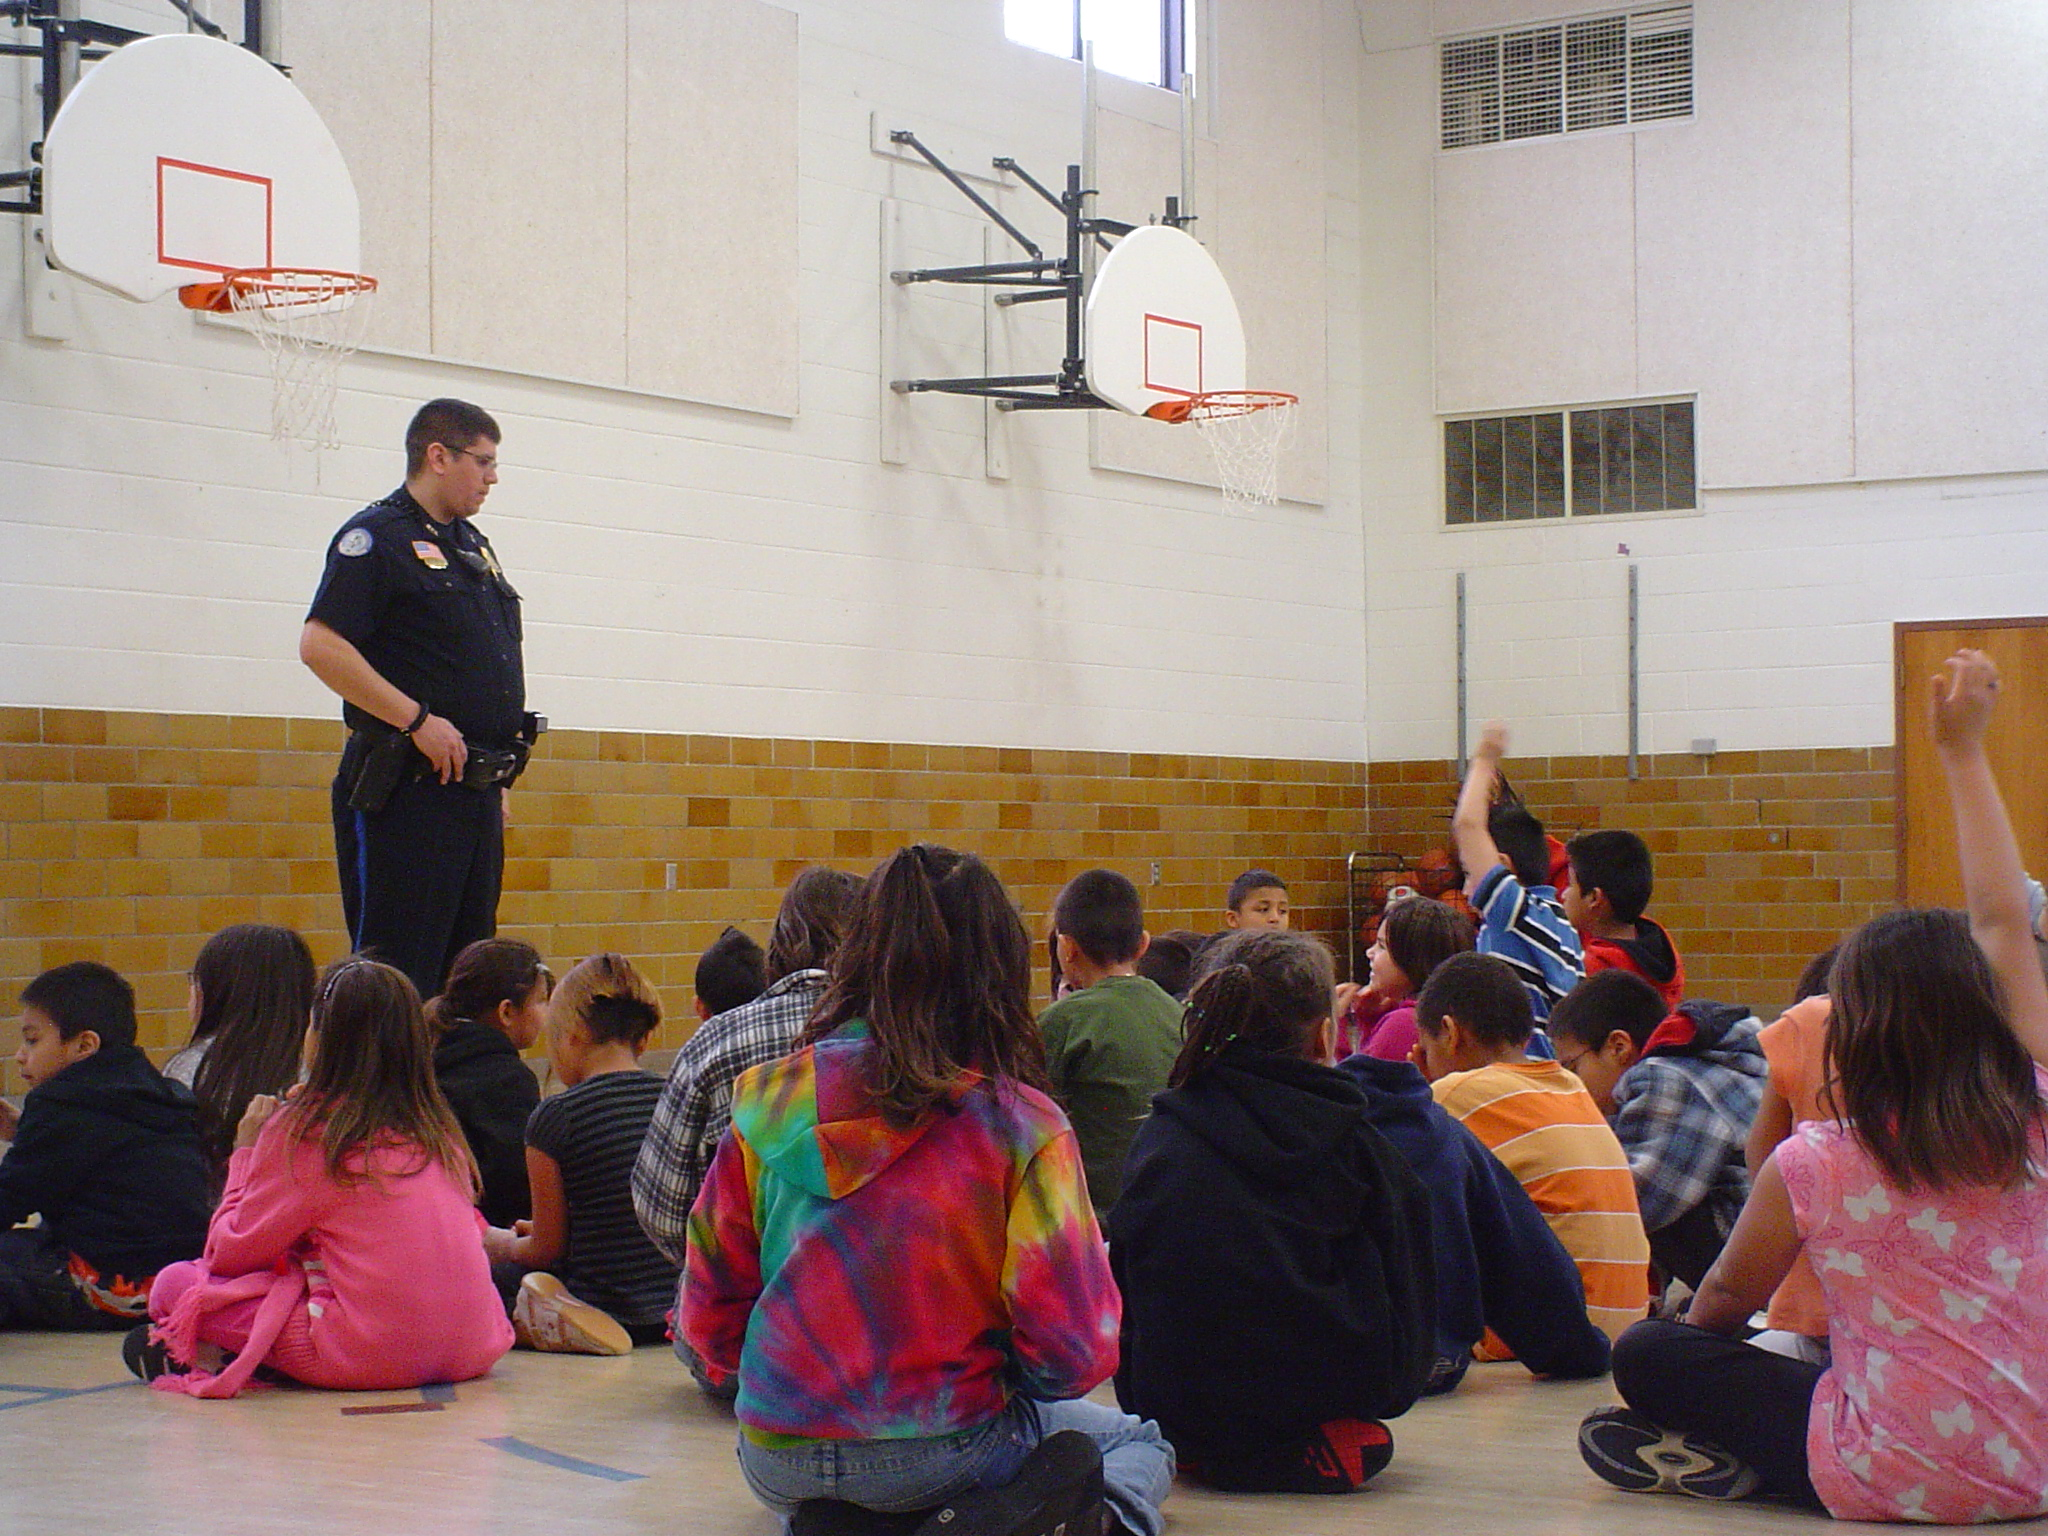 The American Indian youth learned a lot at St. Joseph's Indian School from the police officers on Career Day.